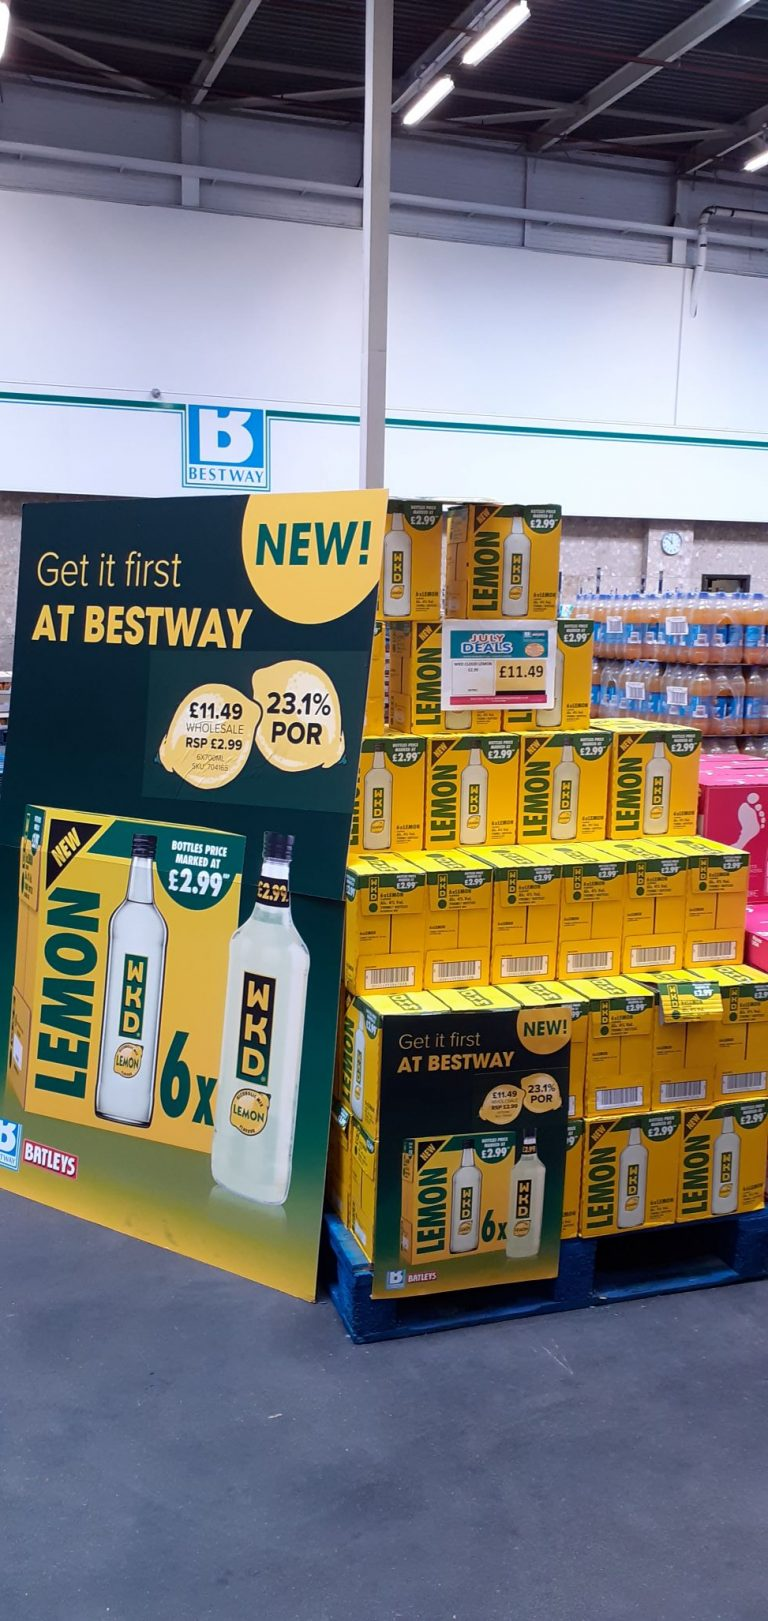 'Partner-working' as Bestway teams up with SHS Drinks for new lemon flavour WKD launch